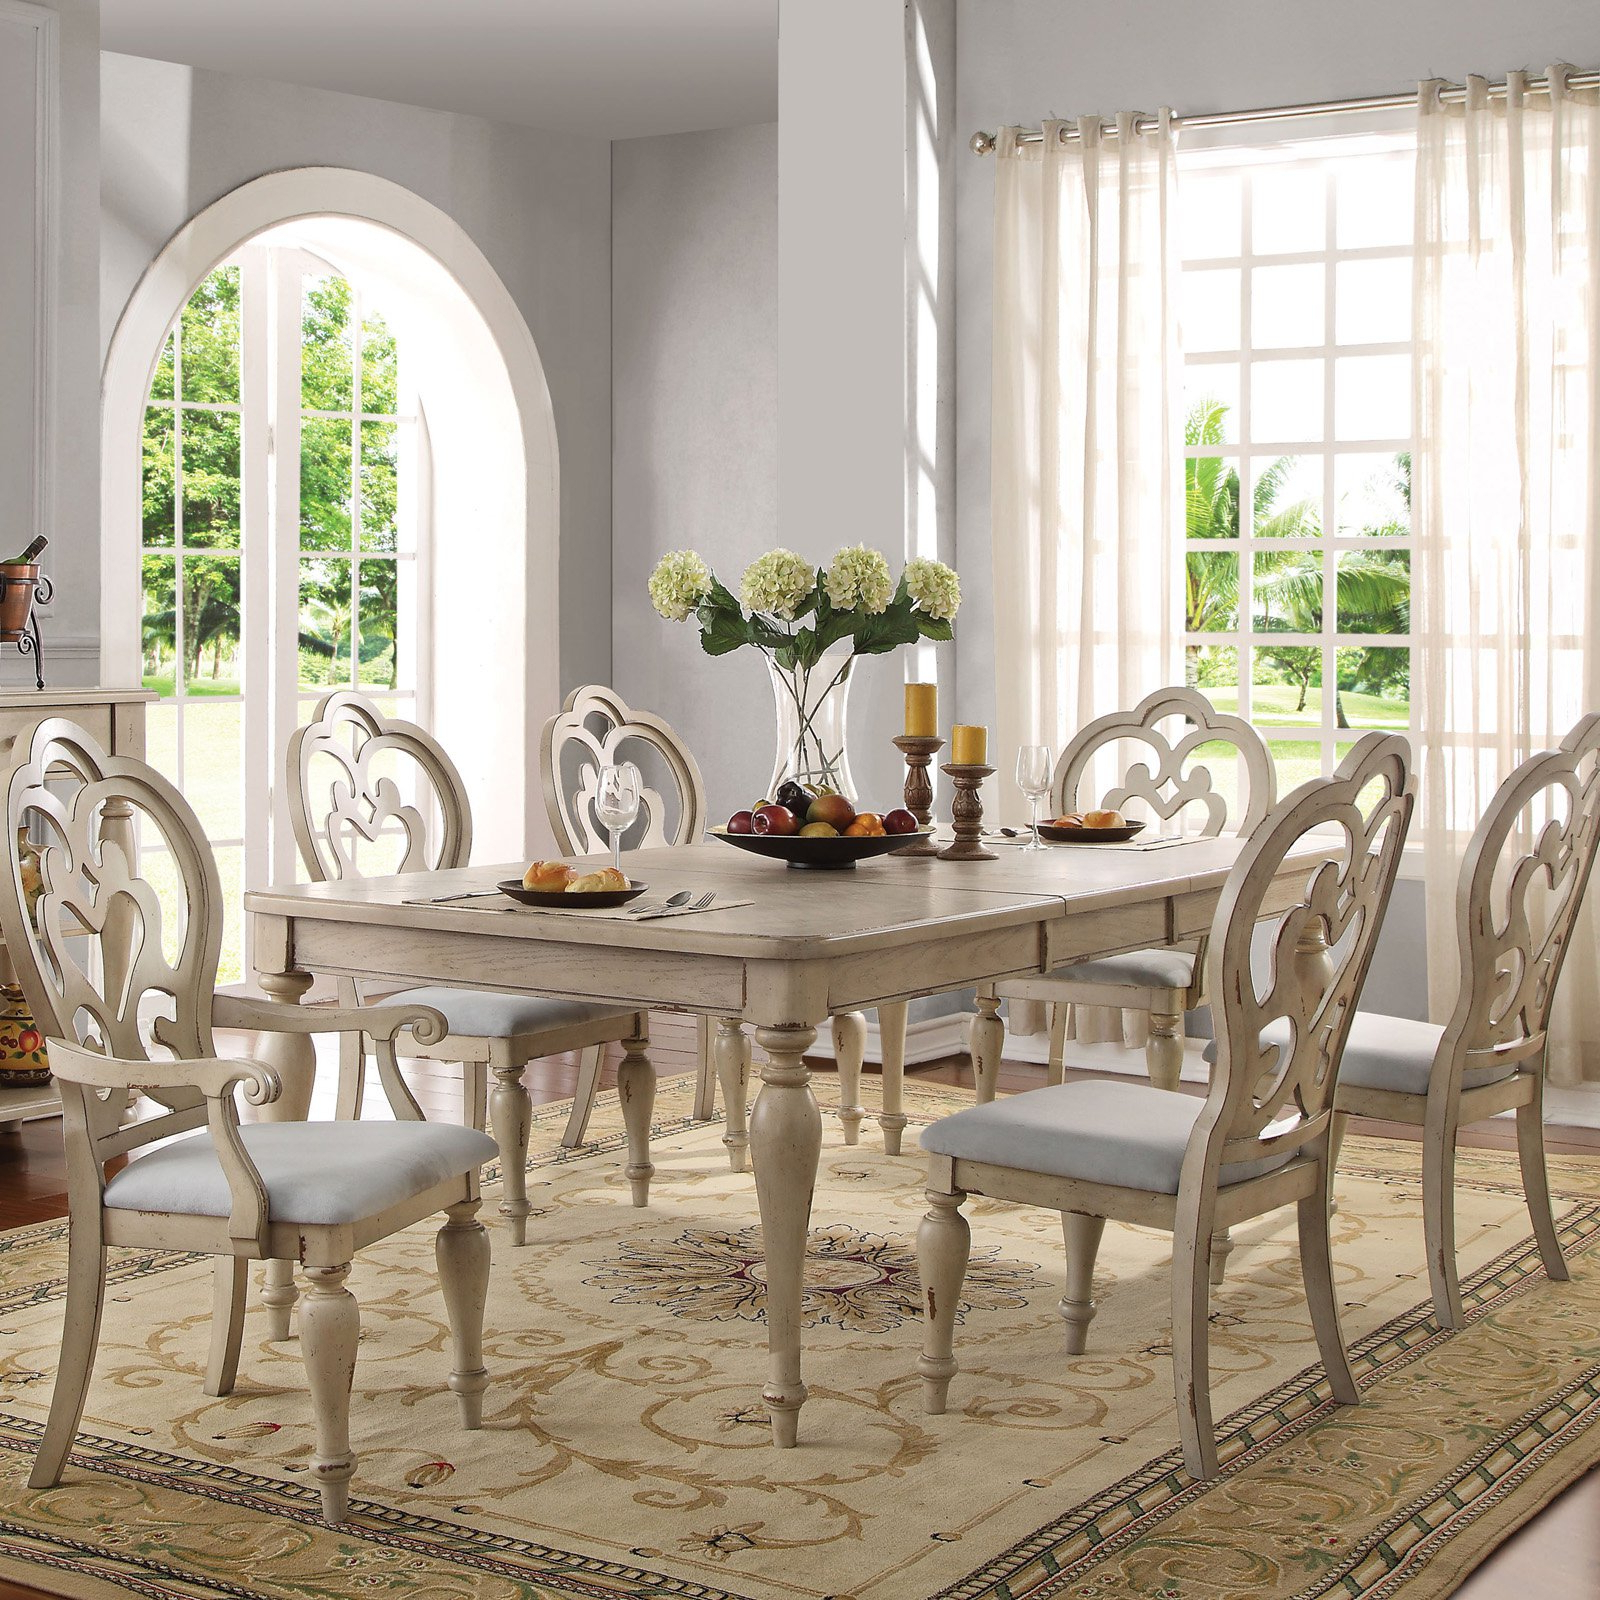 Chelmsford 3 Piece Dining Sets Intended For Preferred Acme Furniture Abelin Dining Table In (View 7 of 25)